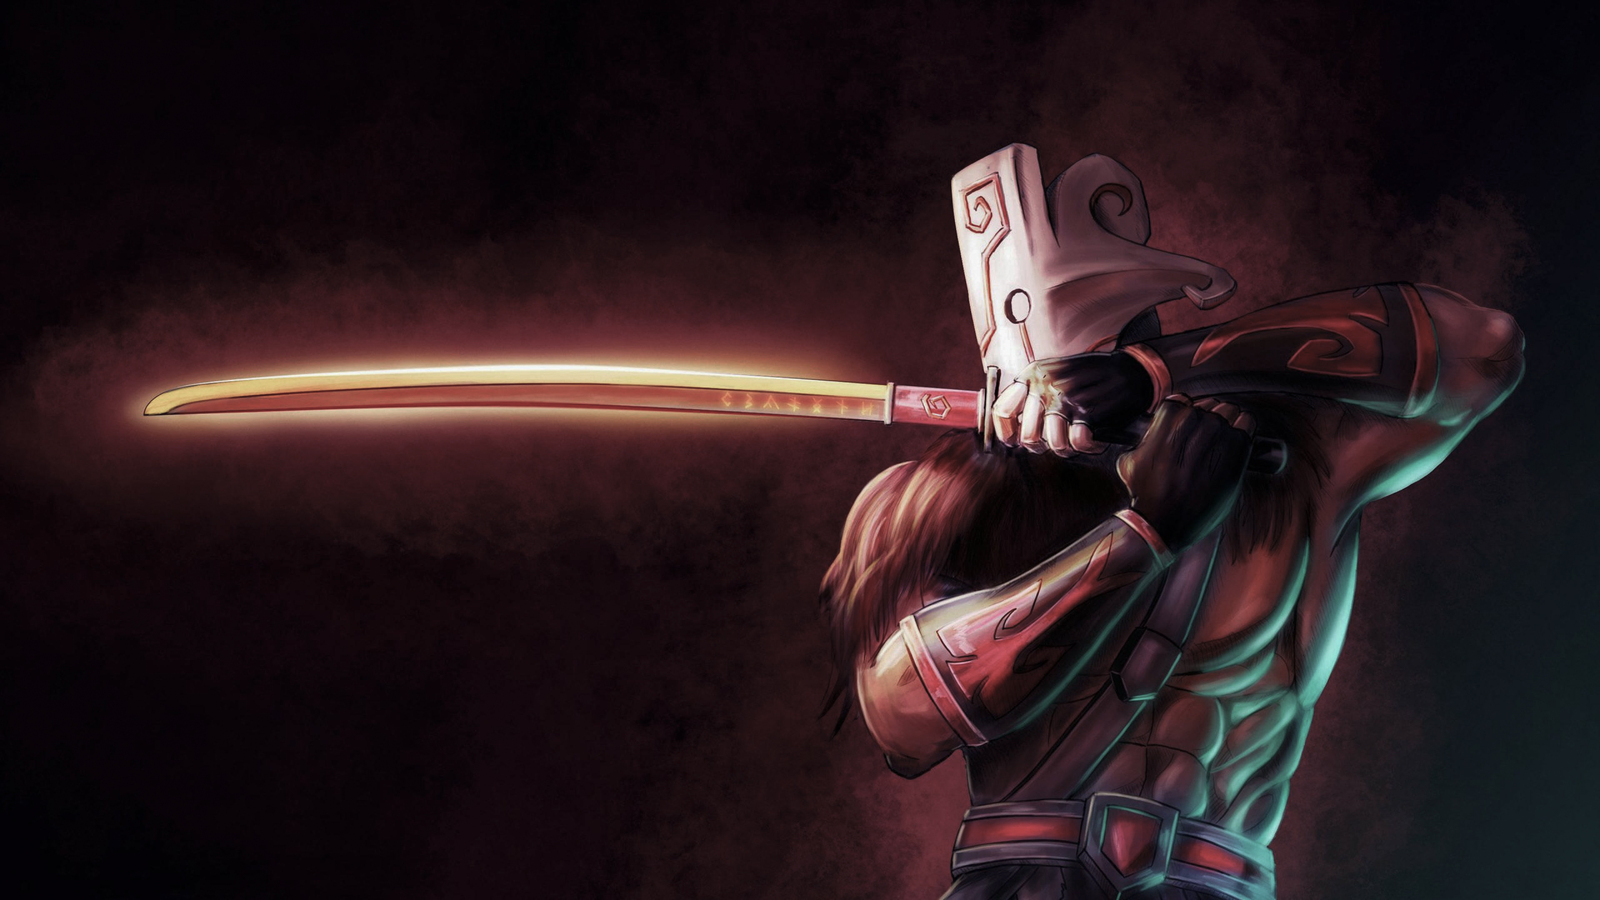 1600x900 juggernaut dota 2 1600x900 resolution hd 4k wallpapers